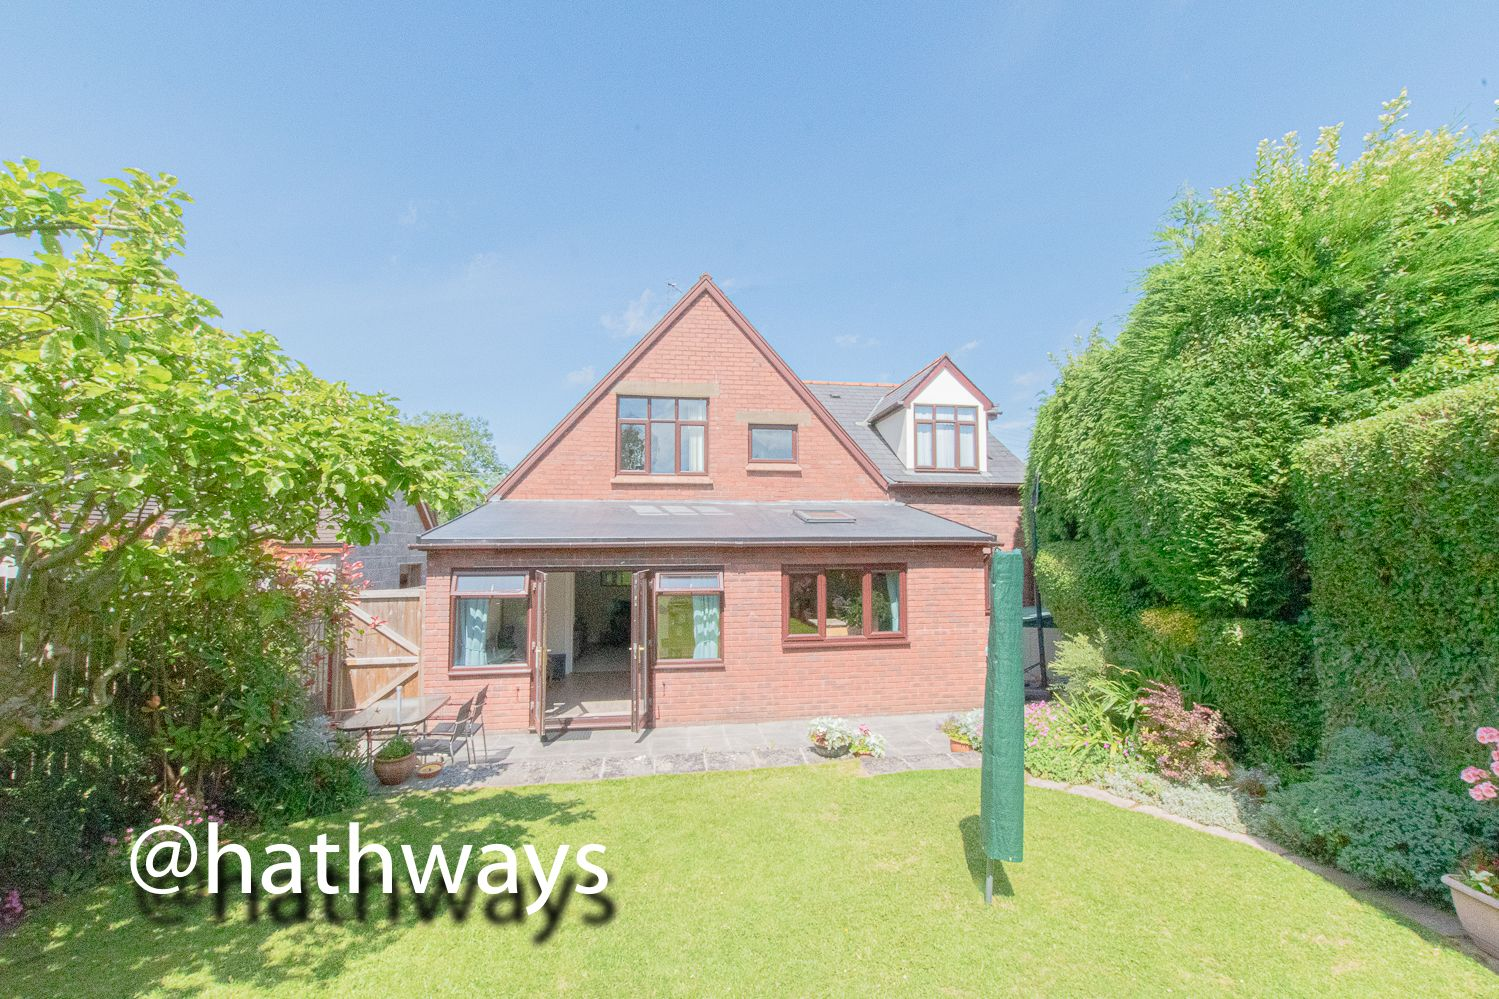 4 bed house for sale in Ashford Close South 52